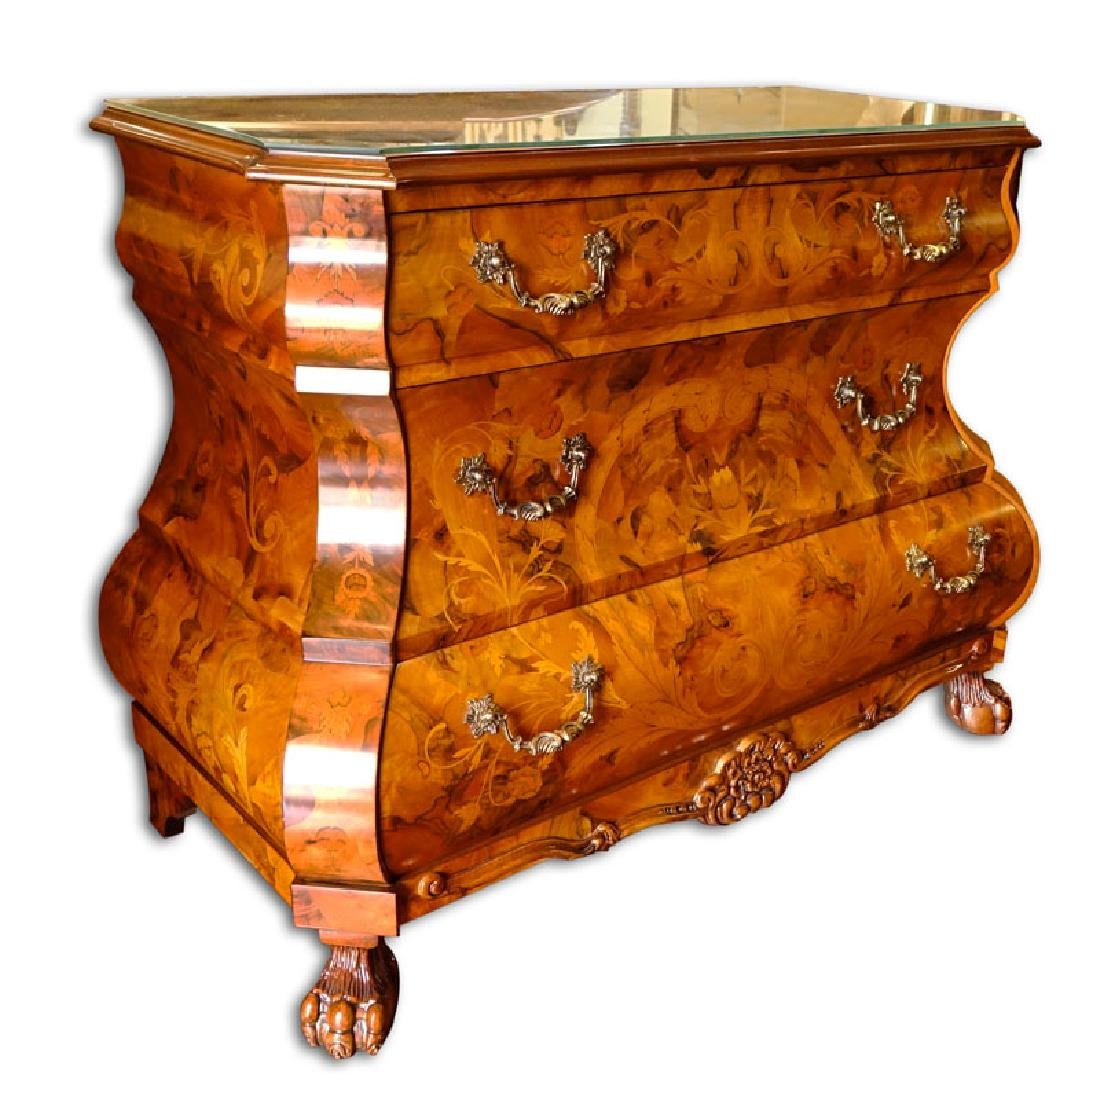 Modern Dutch Style Marquetry Inlaid Chest of Drawers.